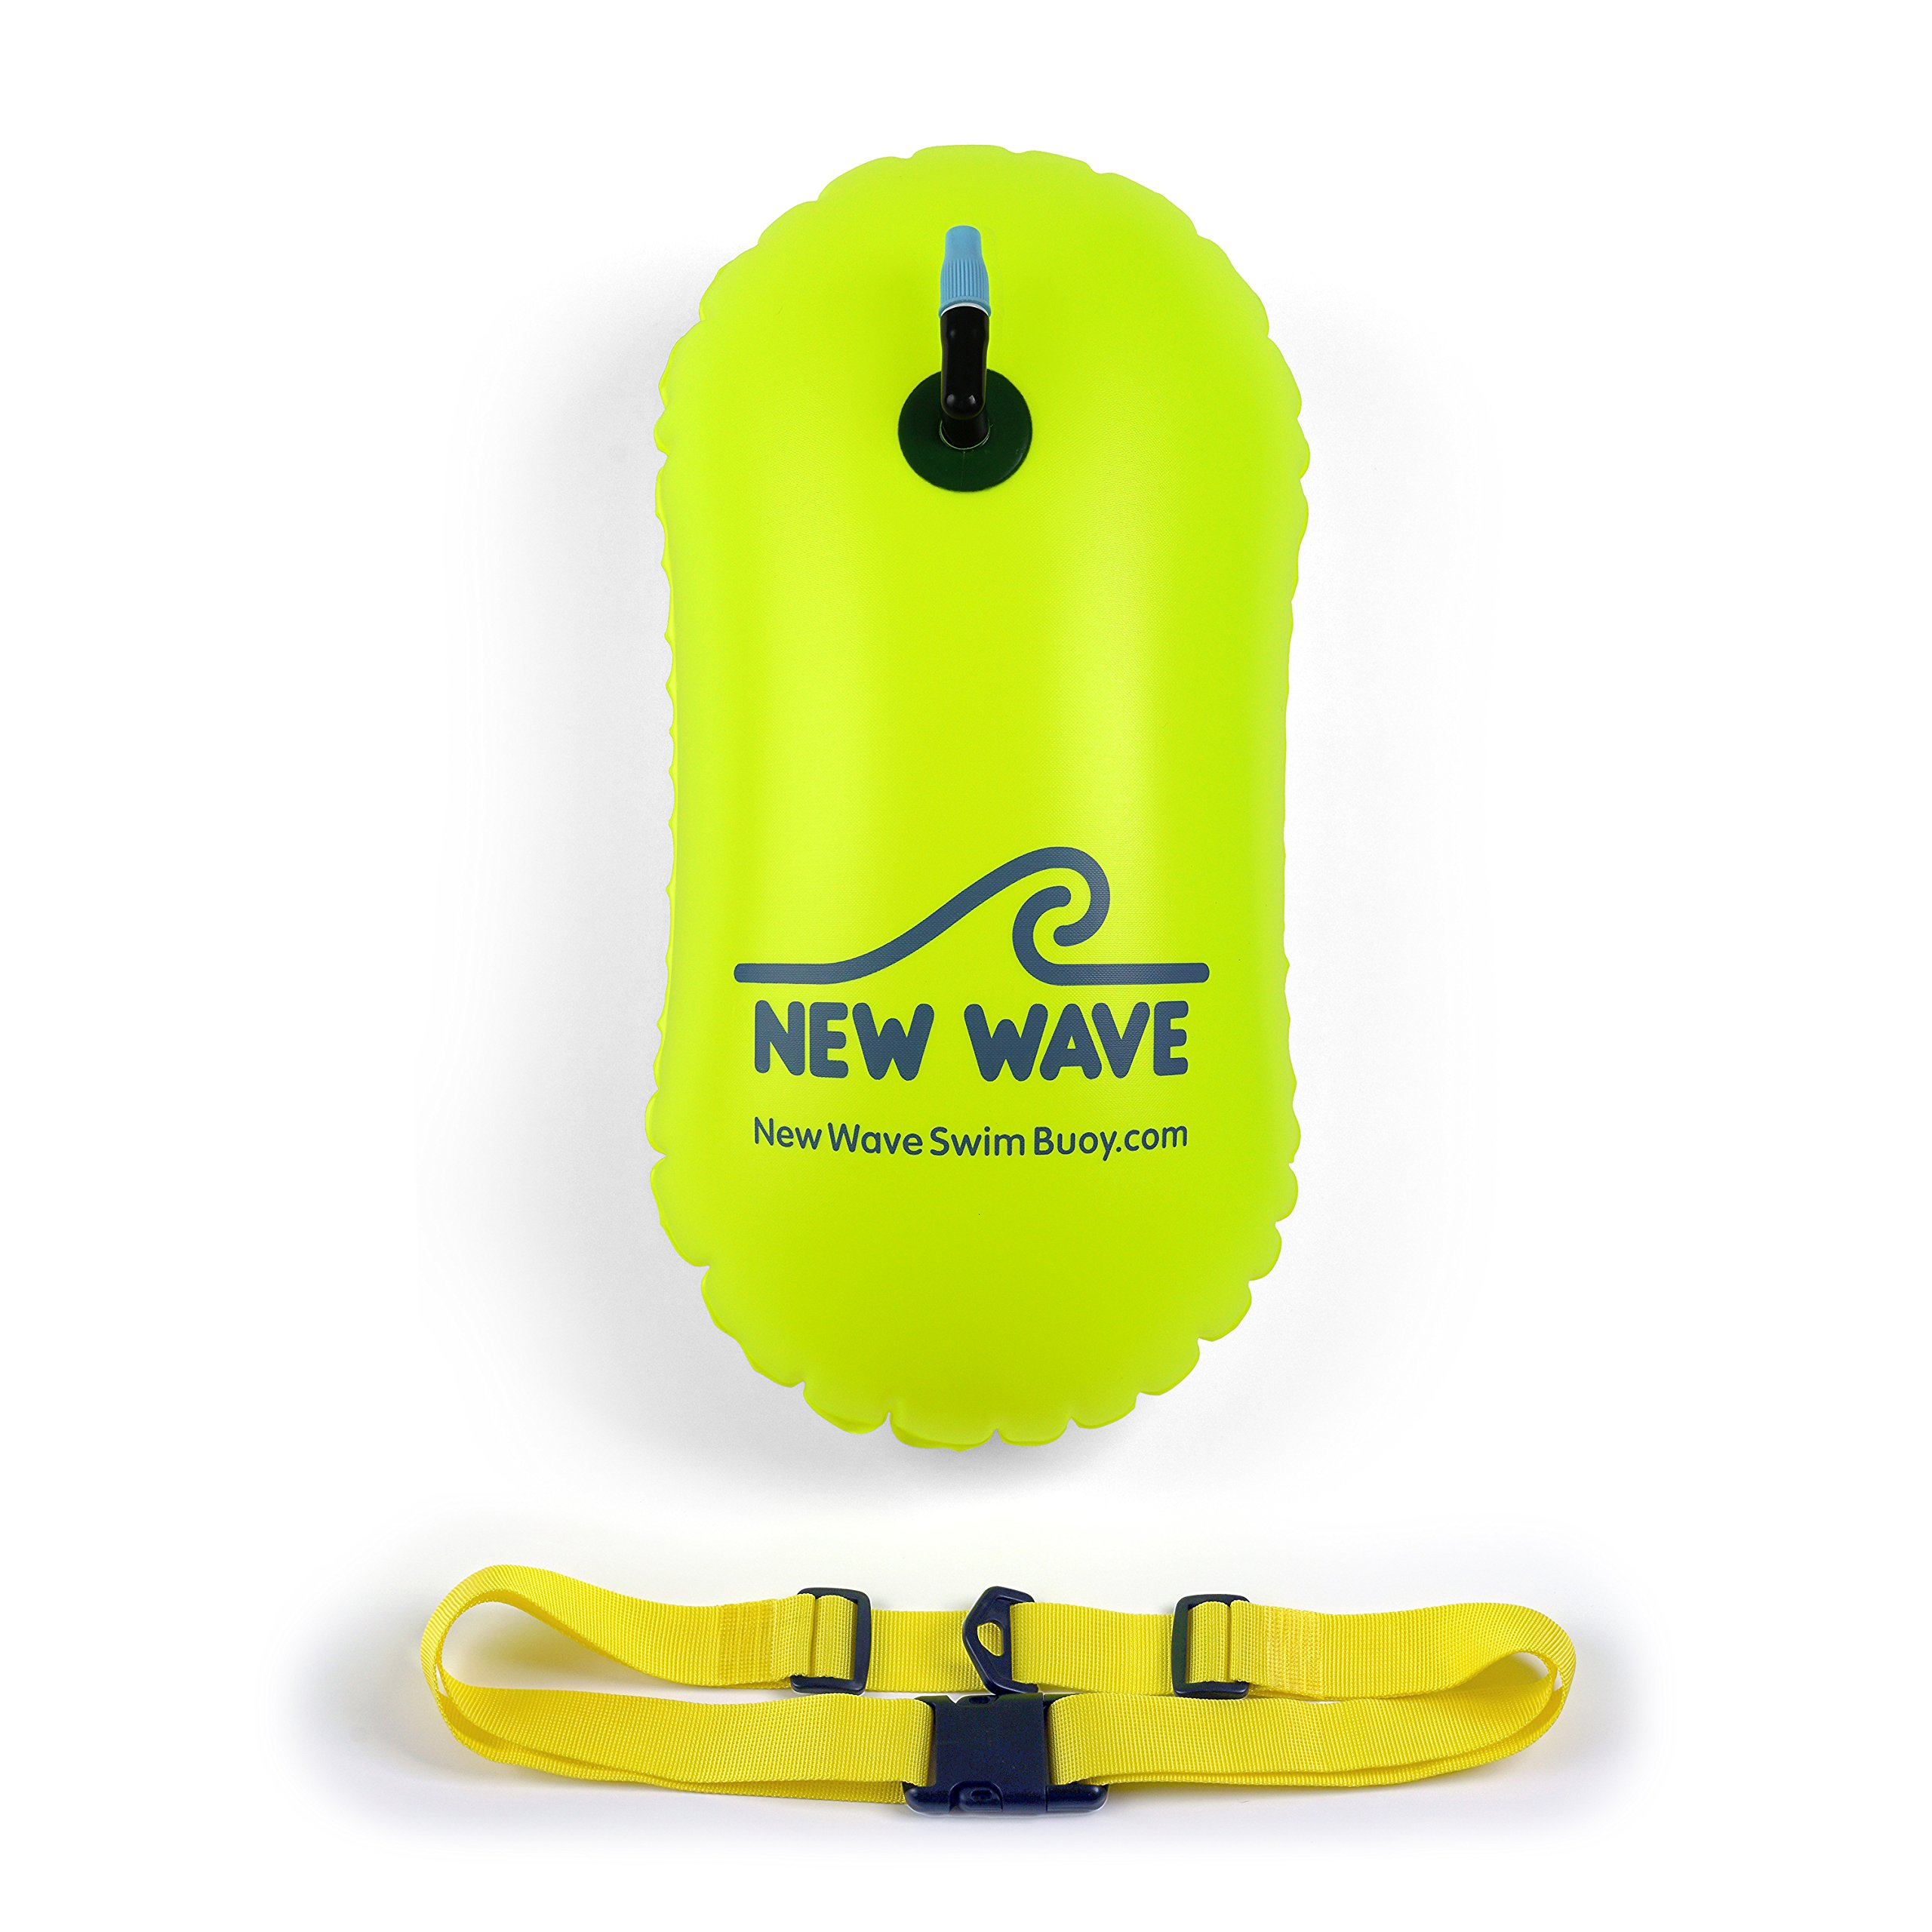 New Wave Swim Bubble for Open Water Swimmers and Triathletes - Be Bright, Be Seen & Be Safer with New Wave While Swimming Outdoors with This Safety Swim Buoy Tow Float (Fluo Green) by New Wave Swim Buoy